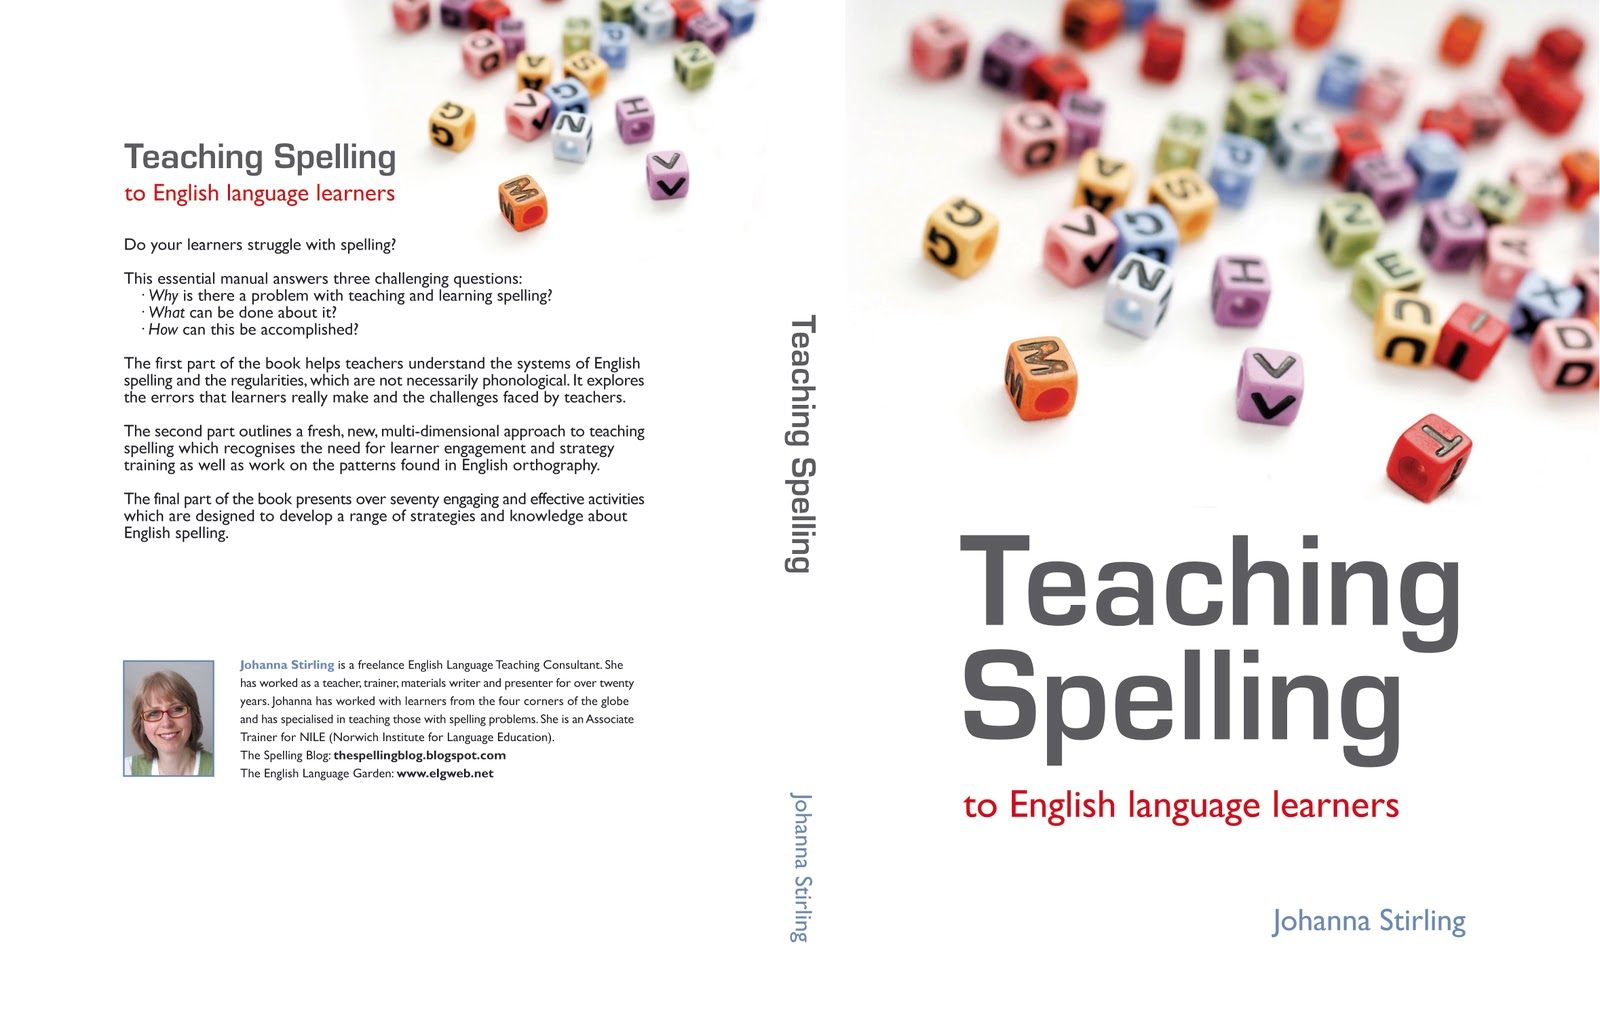 The Spelling Blog: March 2011